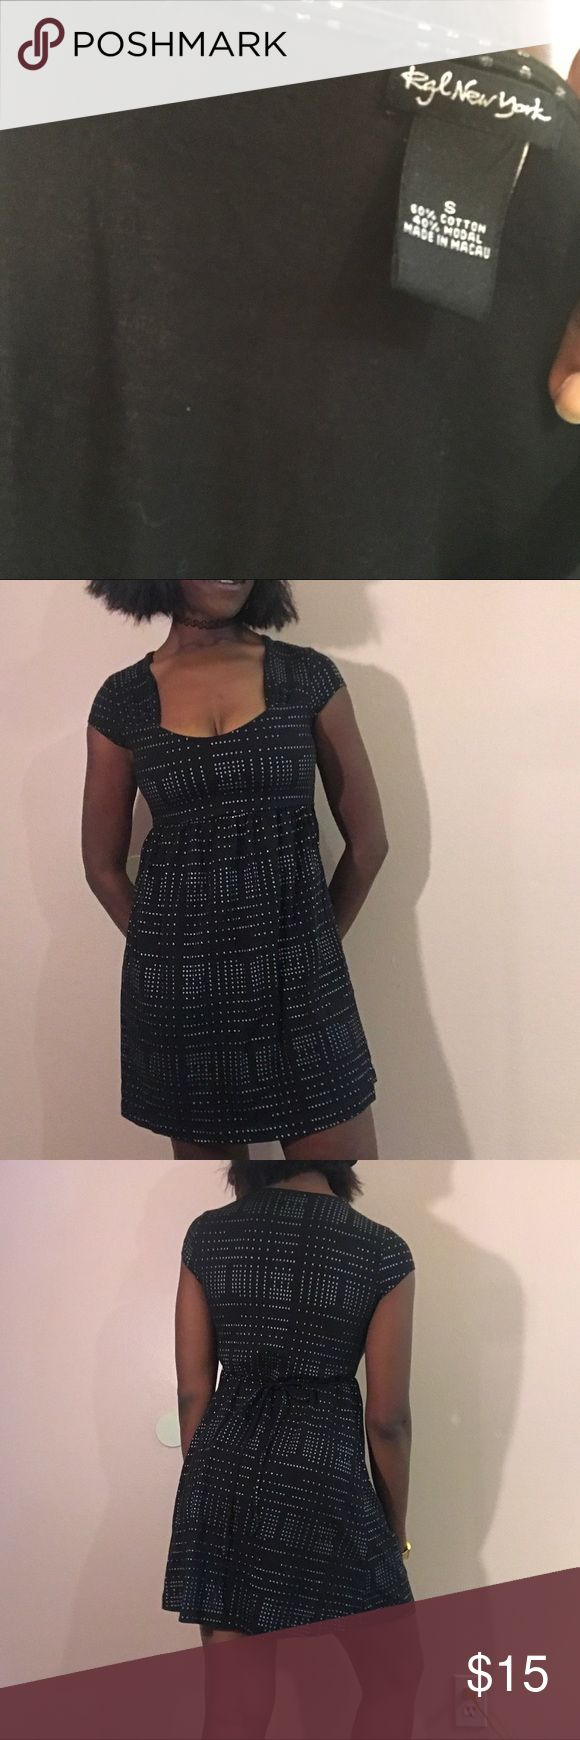 Lack and silver mini dress flare small I don't know why, but this dress reminds me of Star Wars. ✨✨✨ cute mini dress that ties in the back! Black and silver size small!!! Get her today!! DM TO PURCHASE!!  #womenswear #womensfashion #womensclothing #womensdress #dress #minidress #flare #silver #starwars #stars #lightspeed #forsale #depop #poshmark #ebay #vinted #thrift #seller #luxury #expensive #smallbusiness #blackowned Dresses Mini